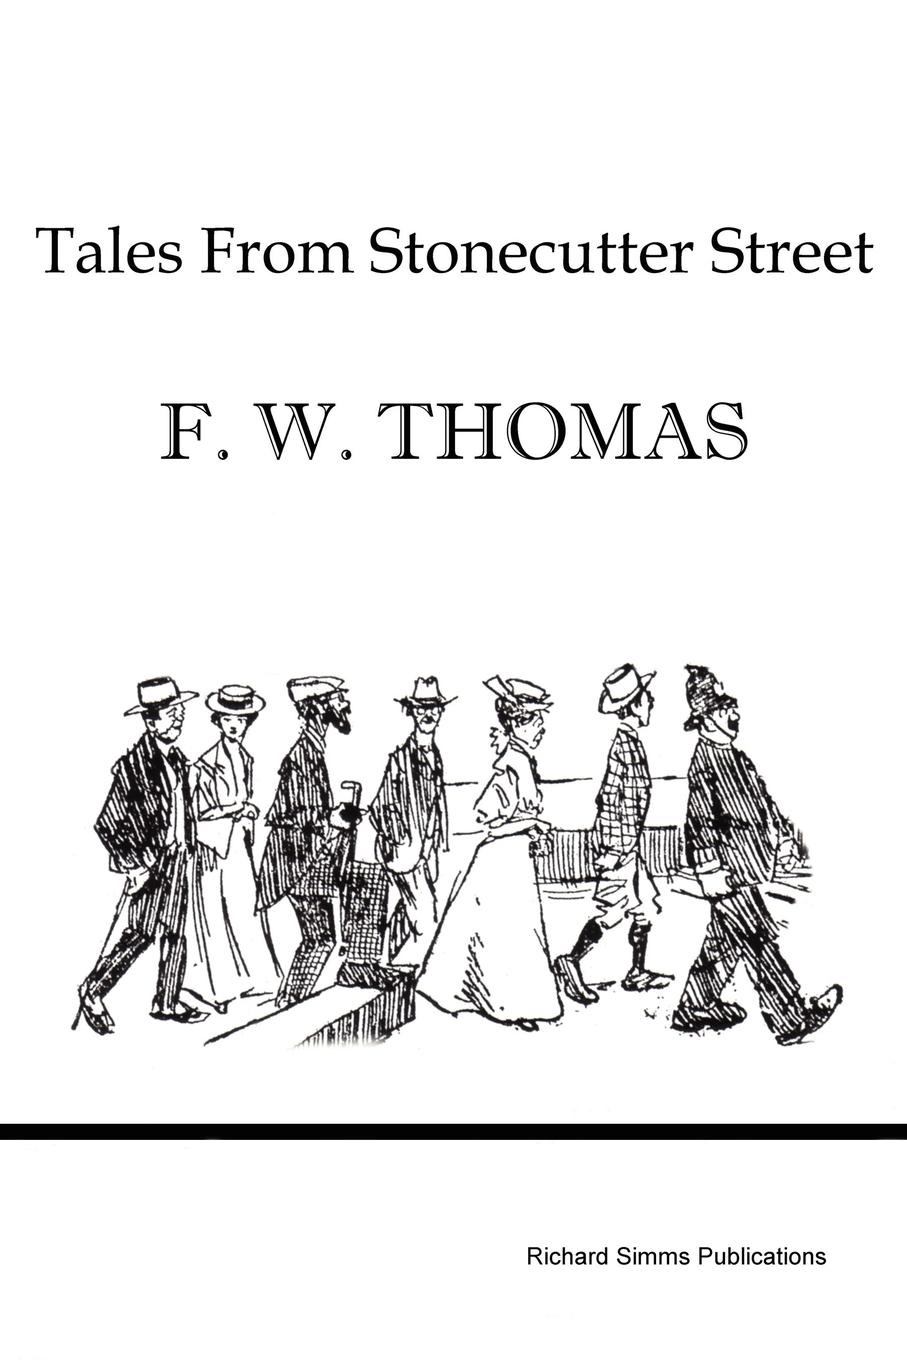 F. W. Thomas Tales from Stonecutter Street boris collardi f j private banking building a culture of excellence isbn 9780470826980